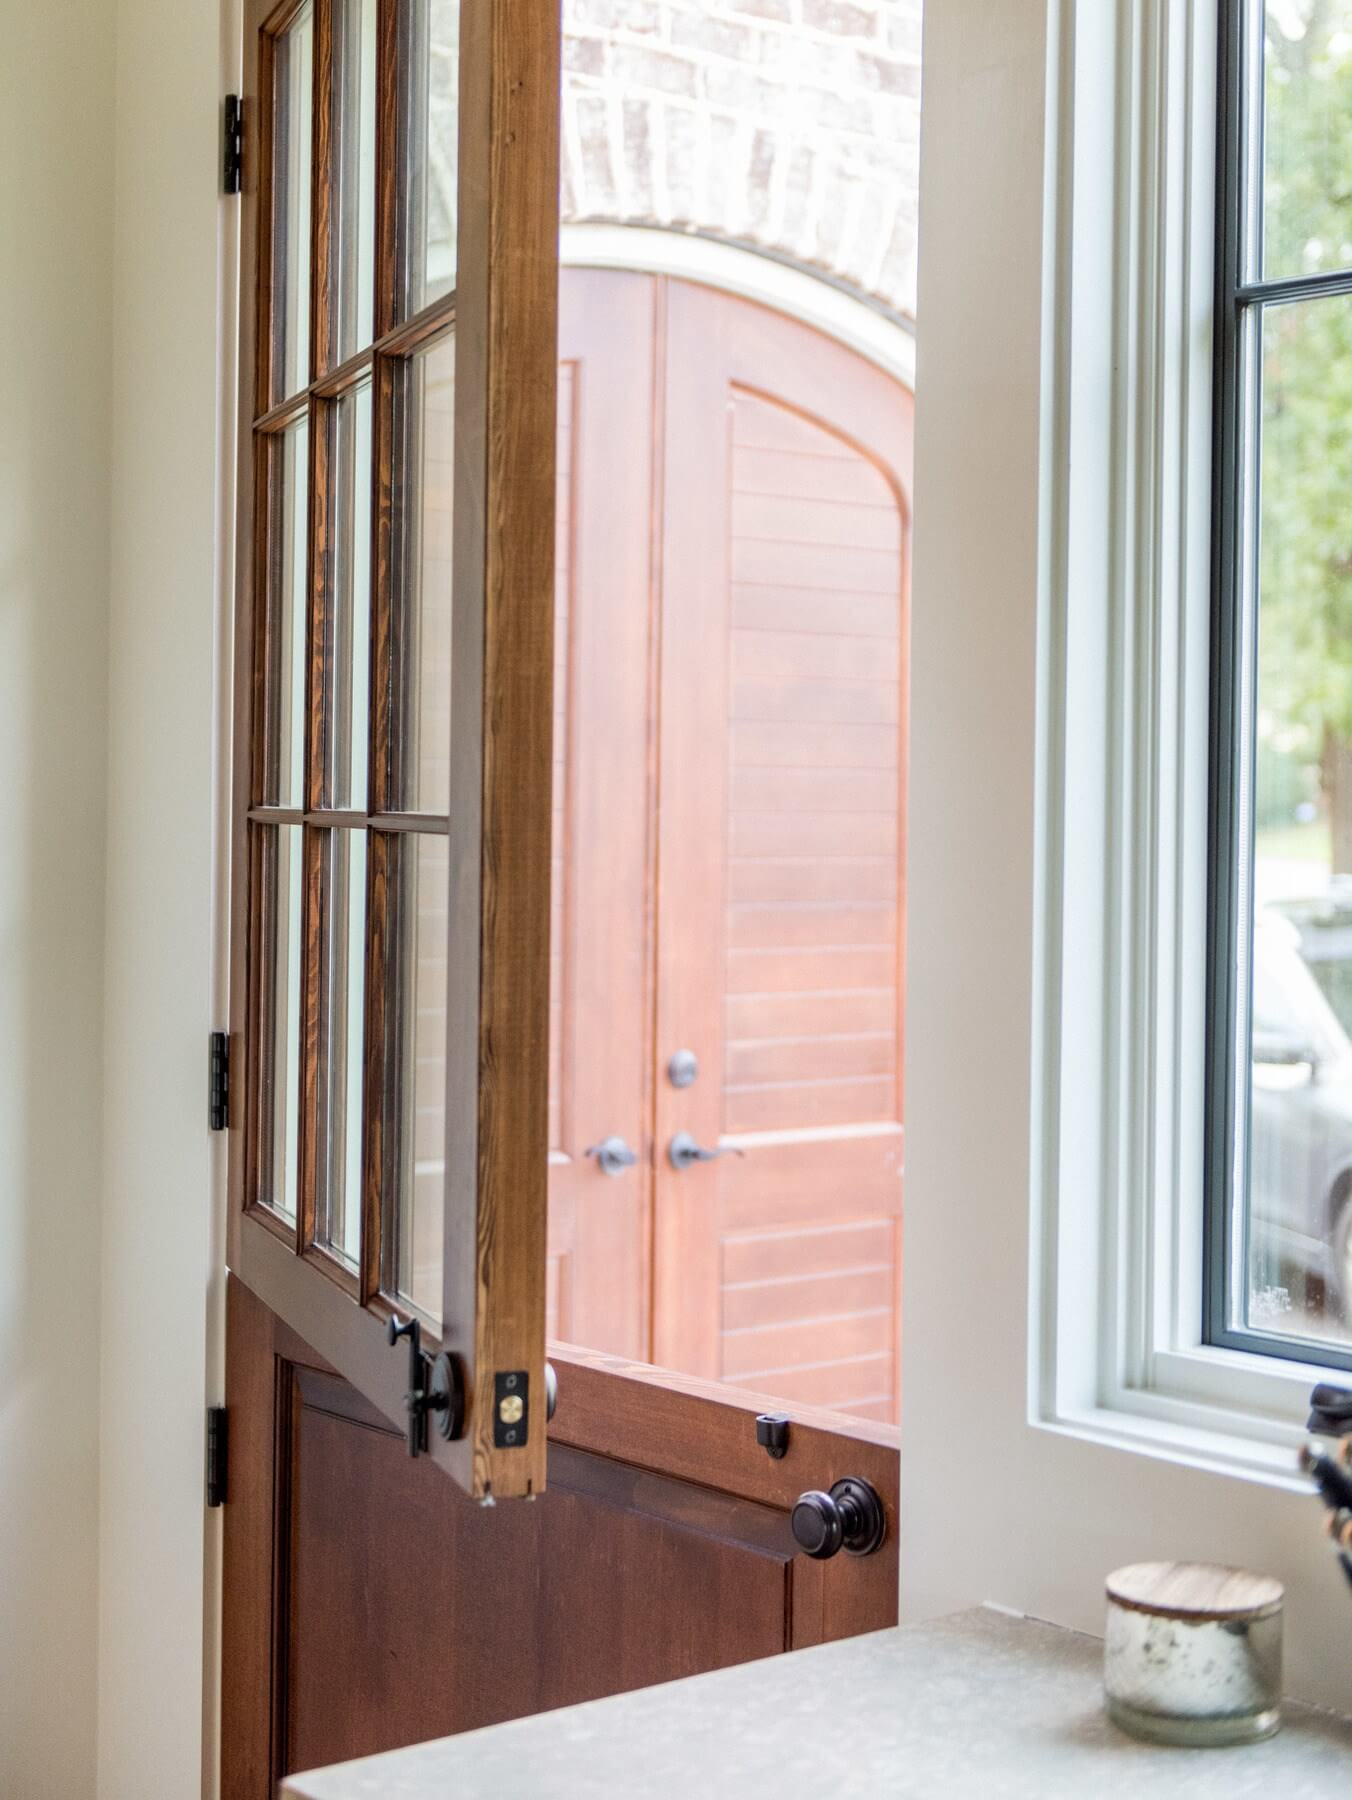 The Dutch door exudes a romantic, Old World feel and a refreshing connection to the great outdoors.